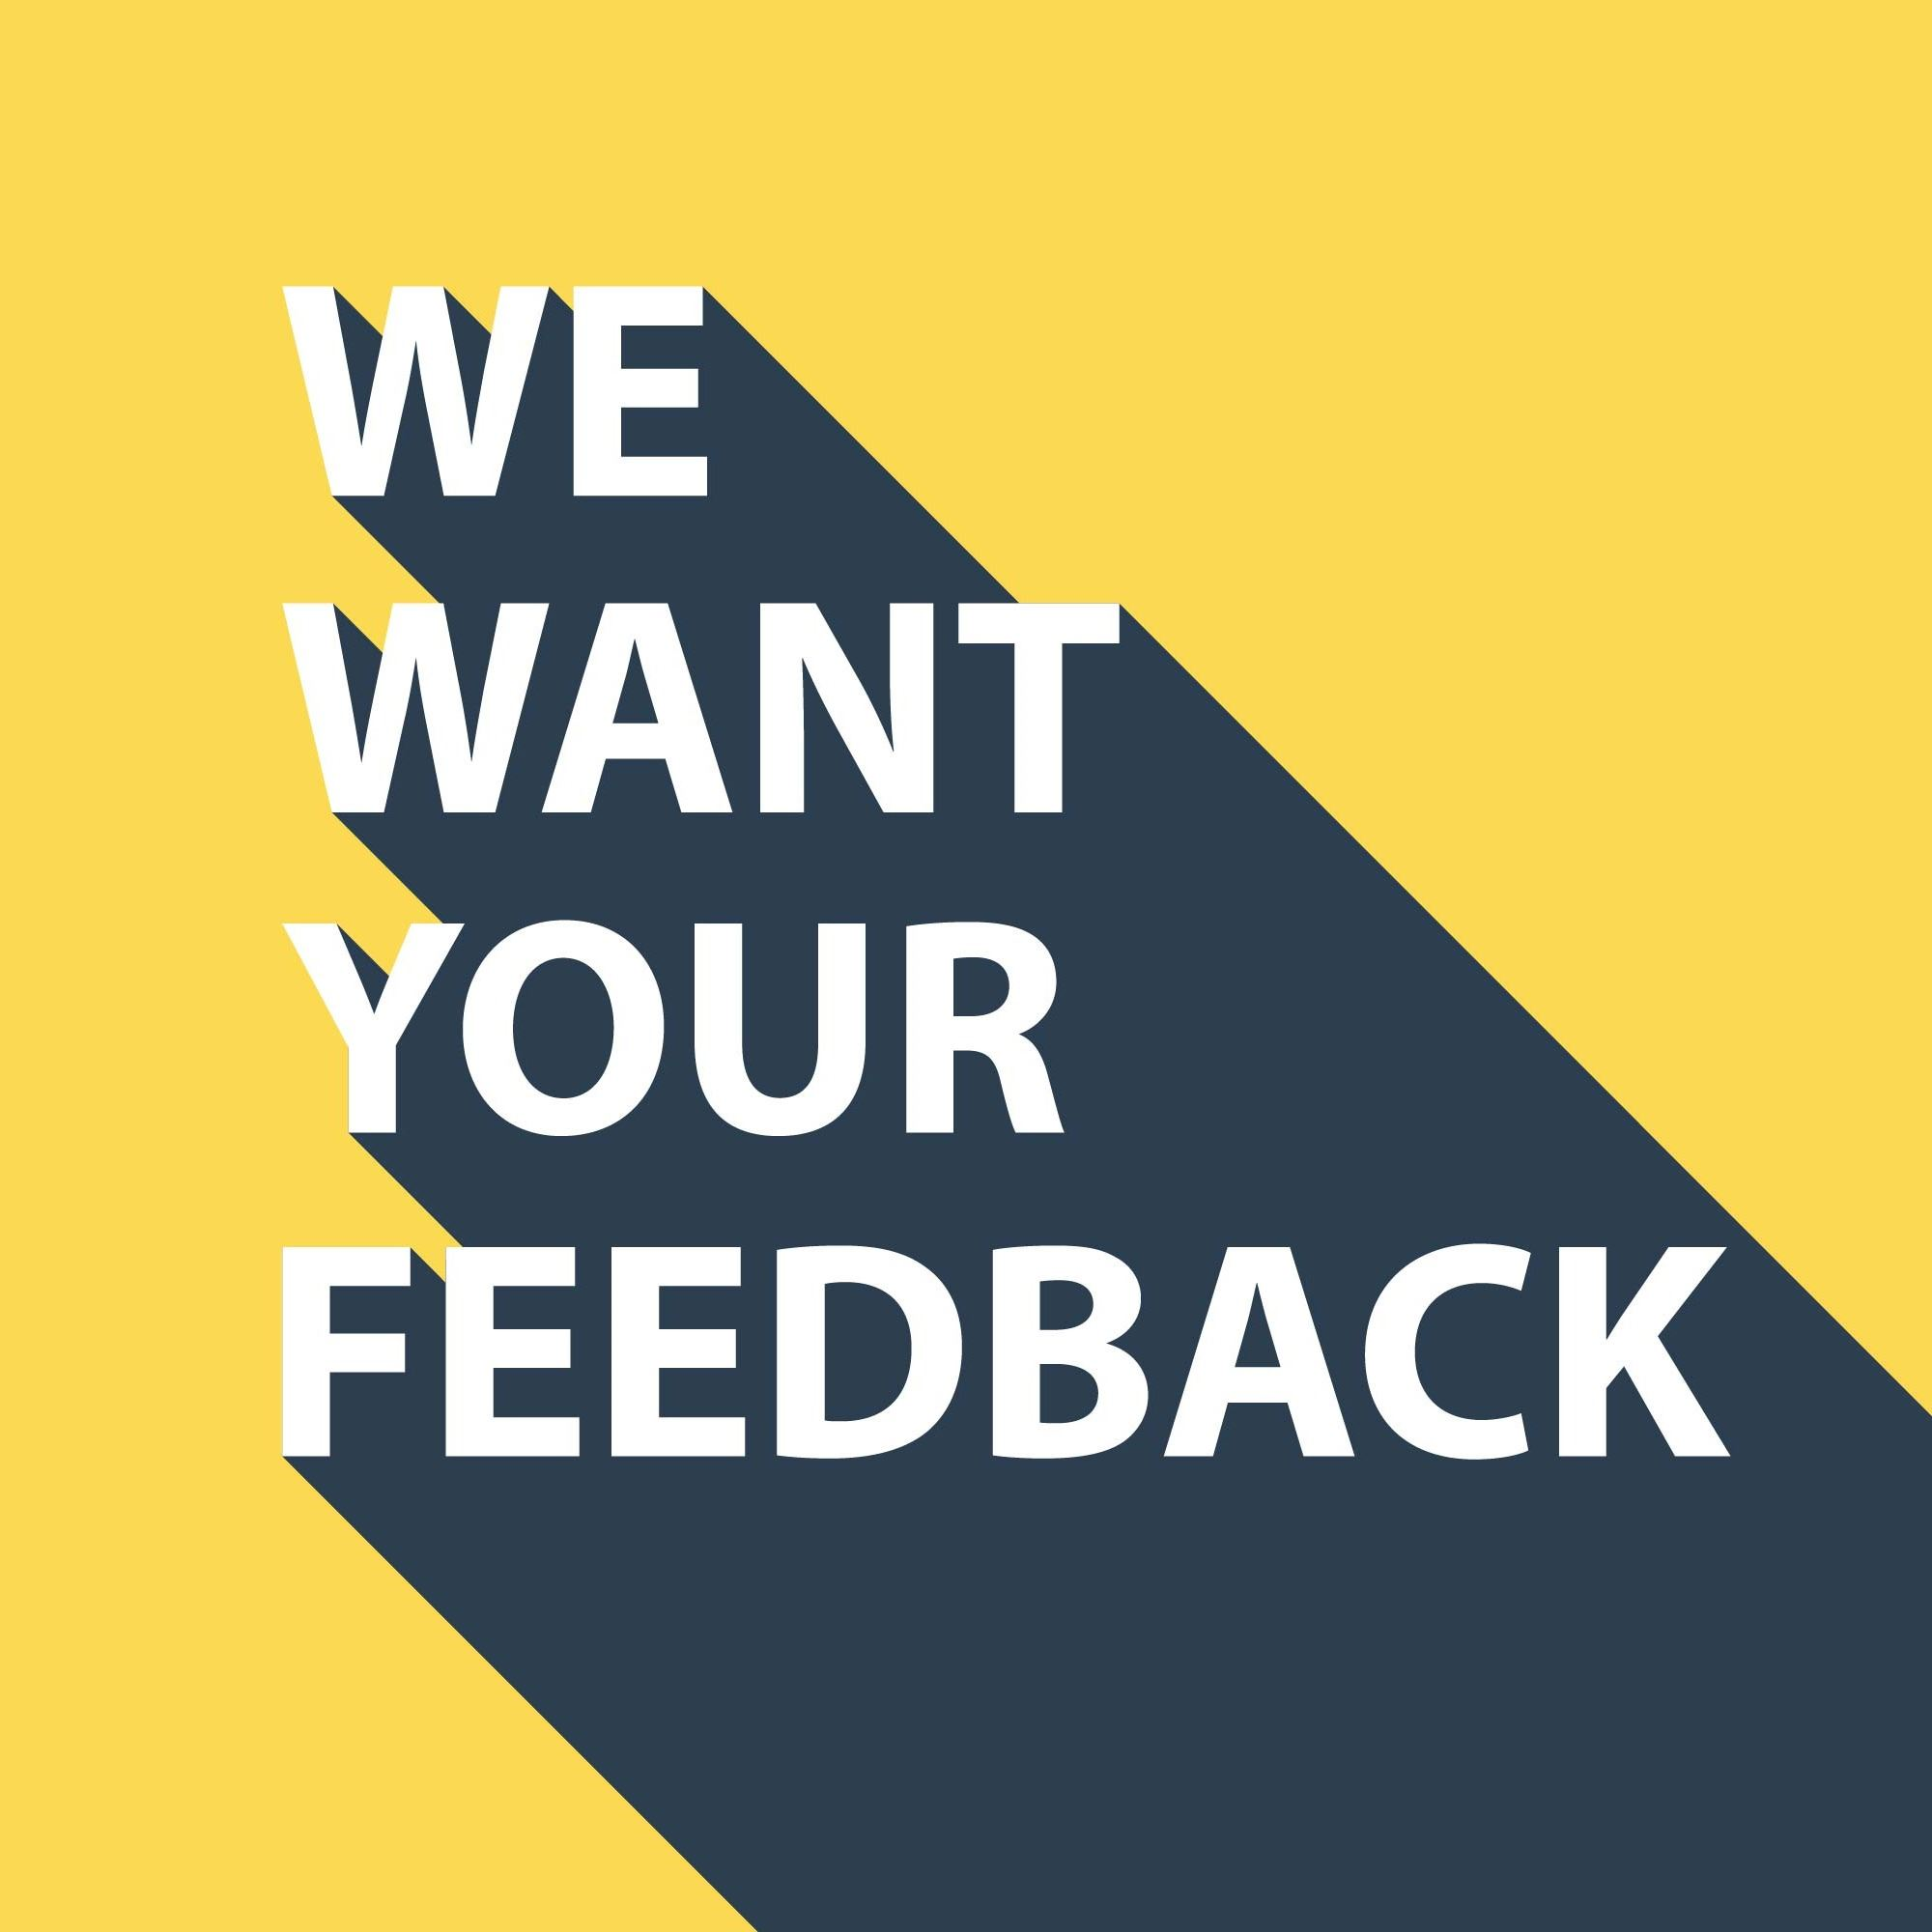 We want Your Feedback sign